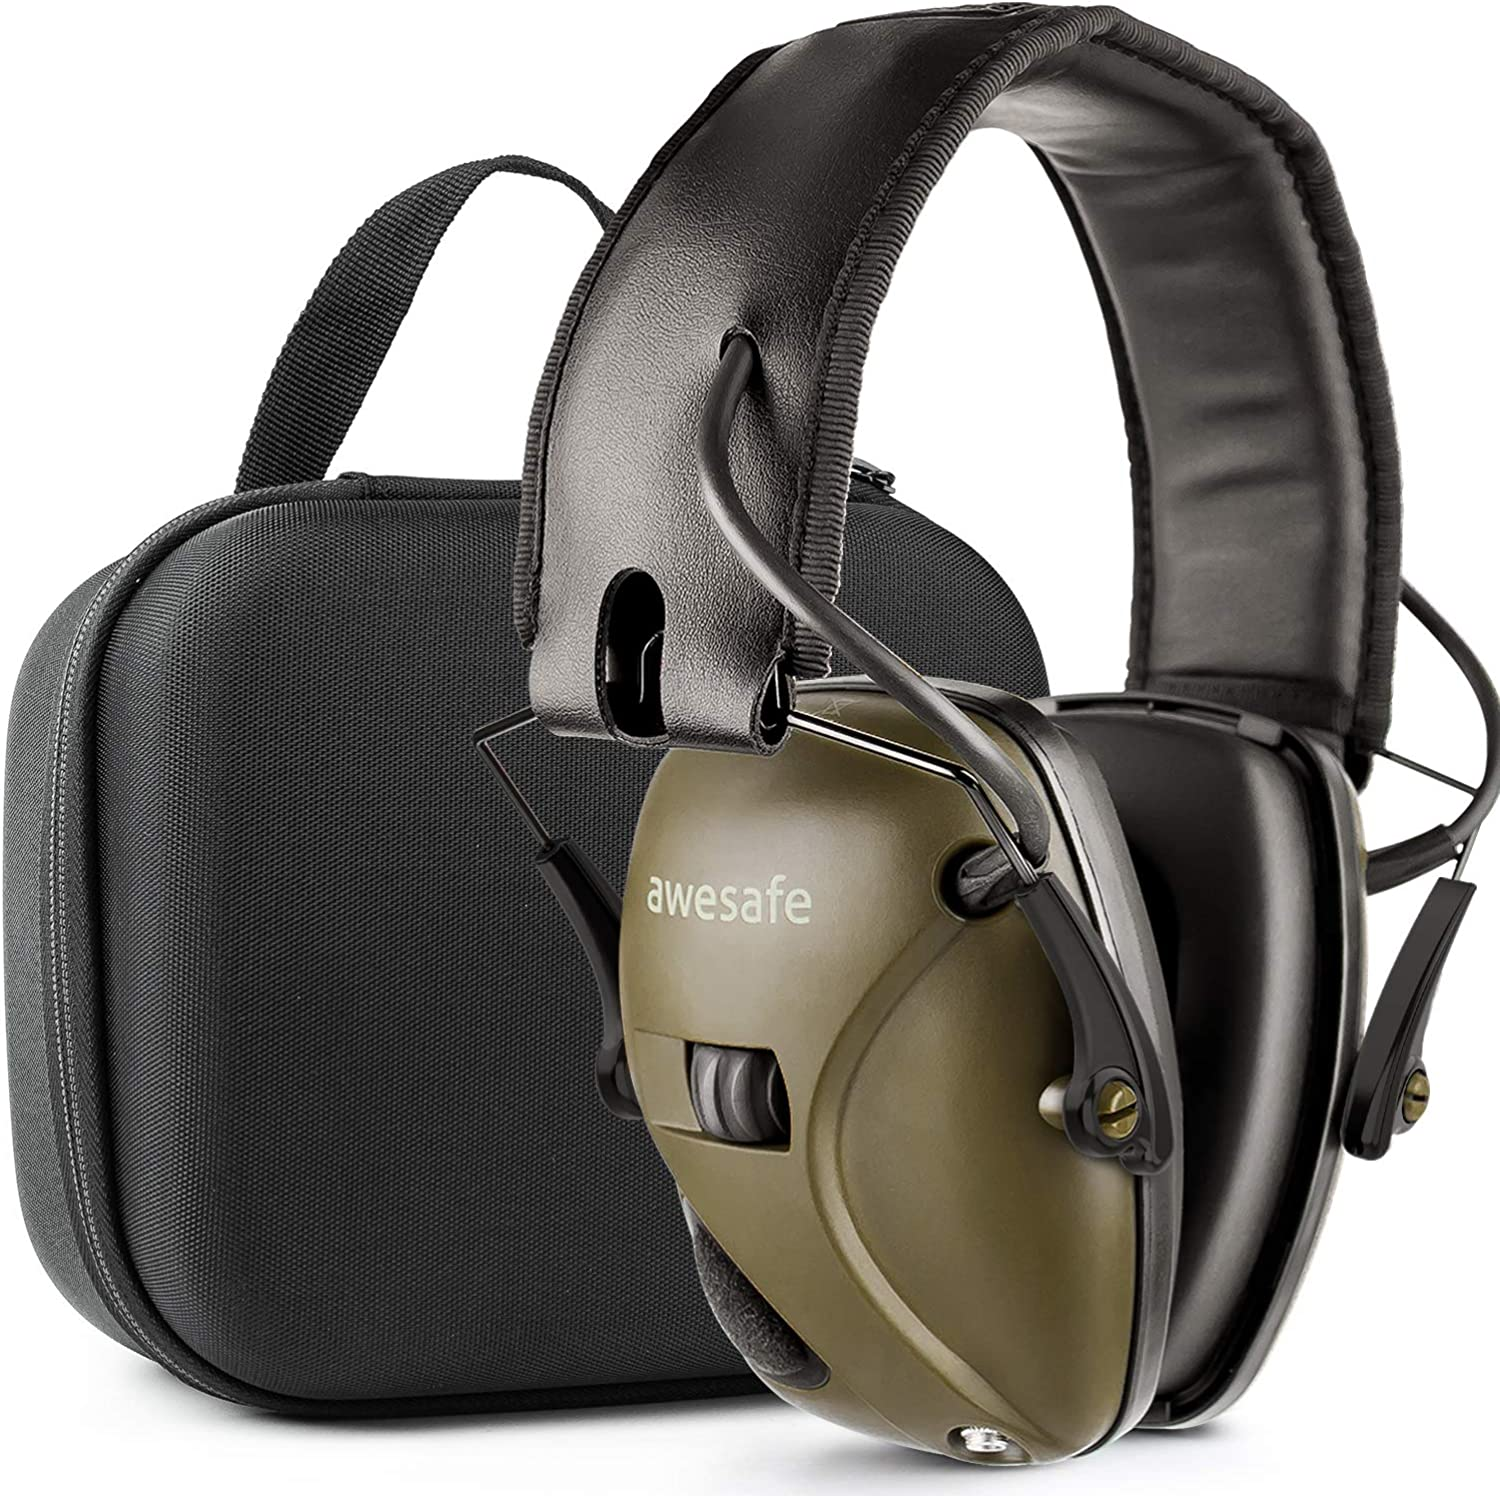 awesafeus Shooting earmuffs Ear Storage Under blast sales Case Spring new work Protection with